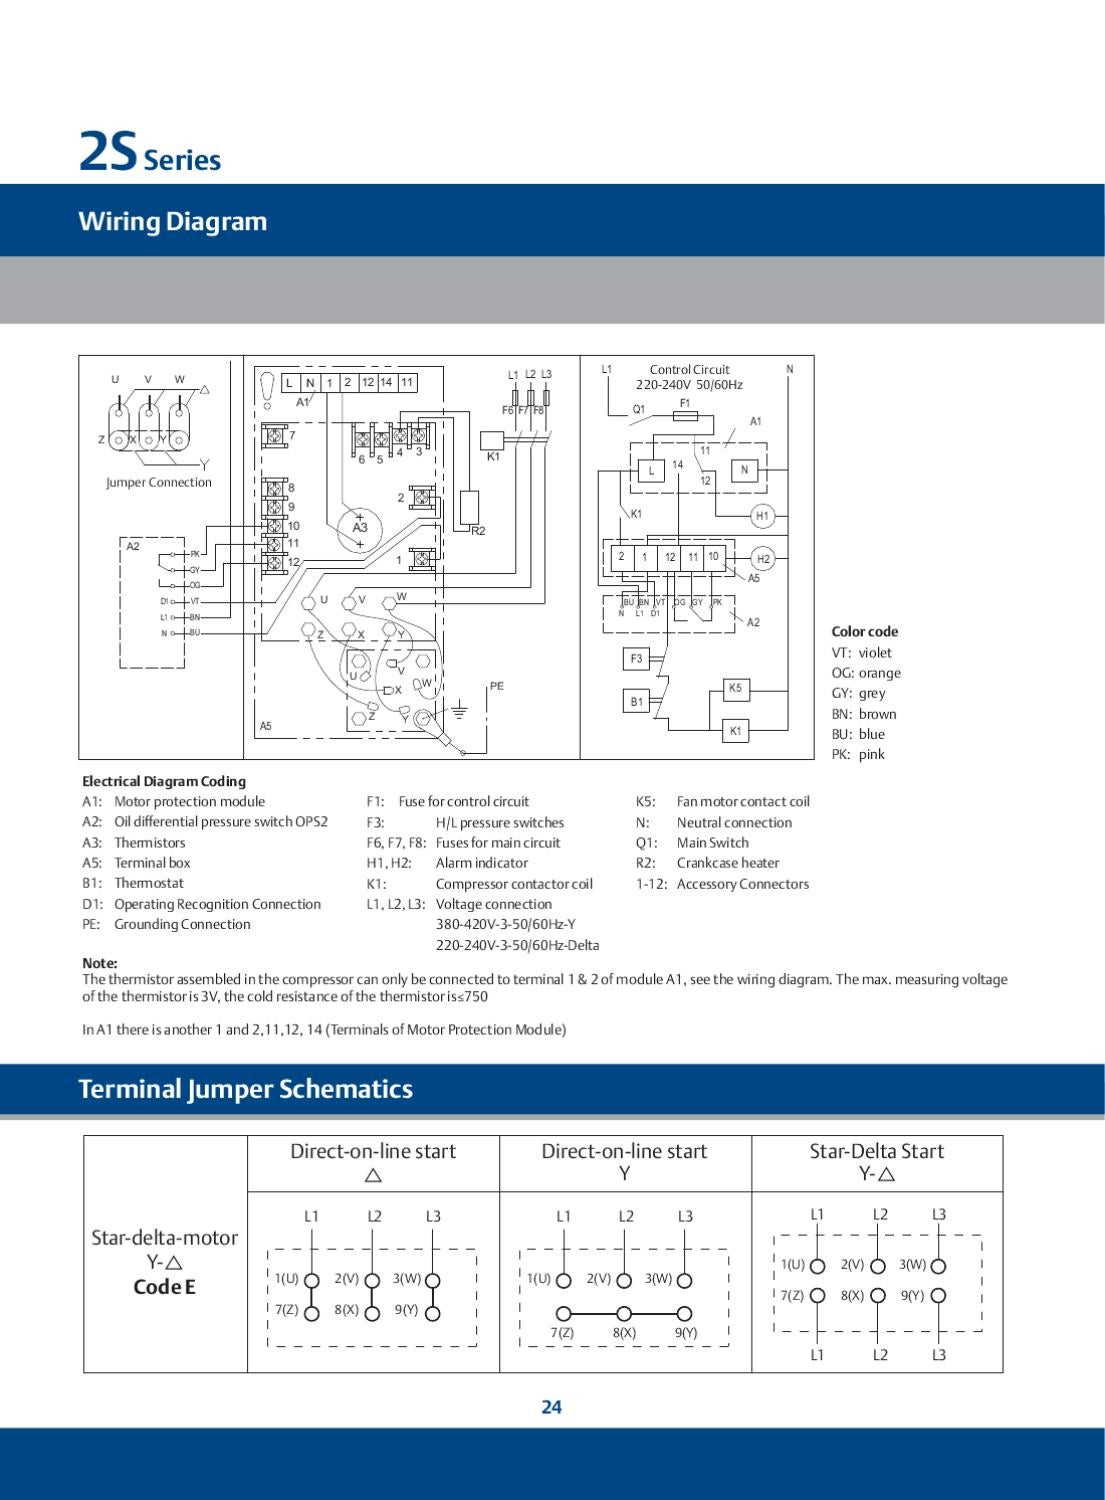 hight resolution of copeland semi hermetic compressor product catalogue feb 2010 by andrew tan lee issuu